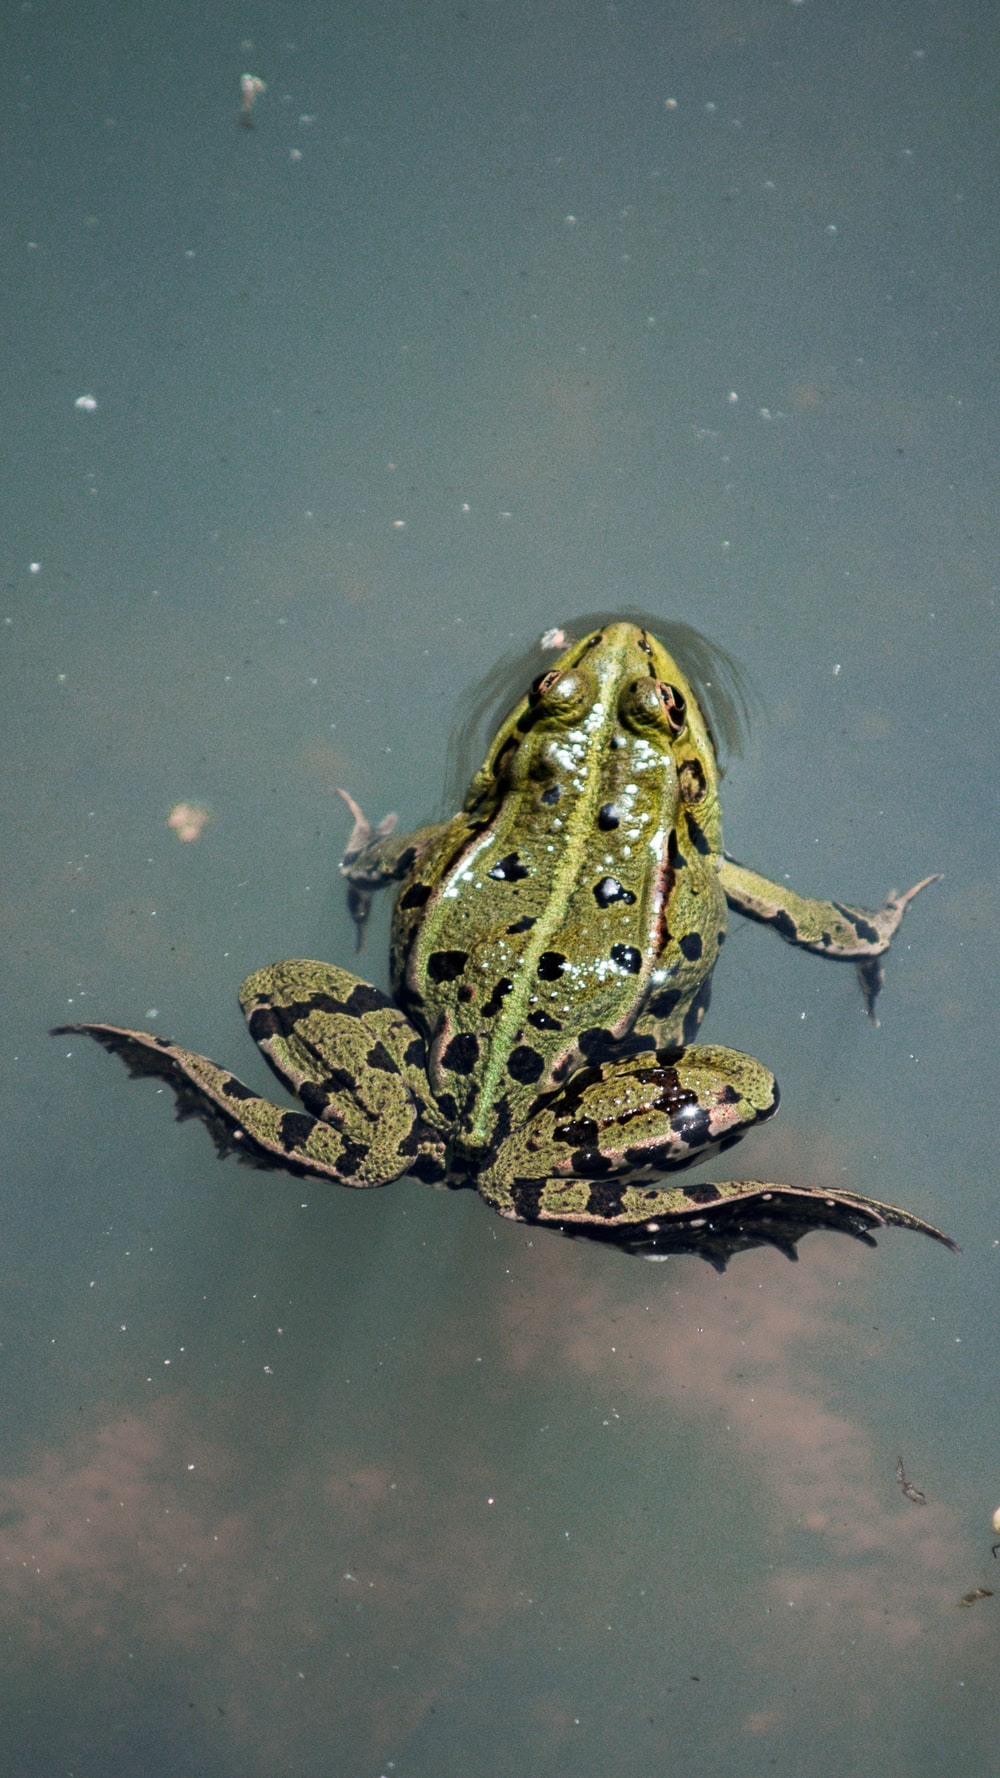 brown and black frog on water